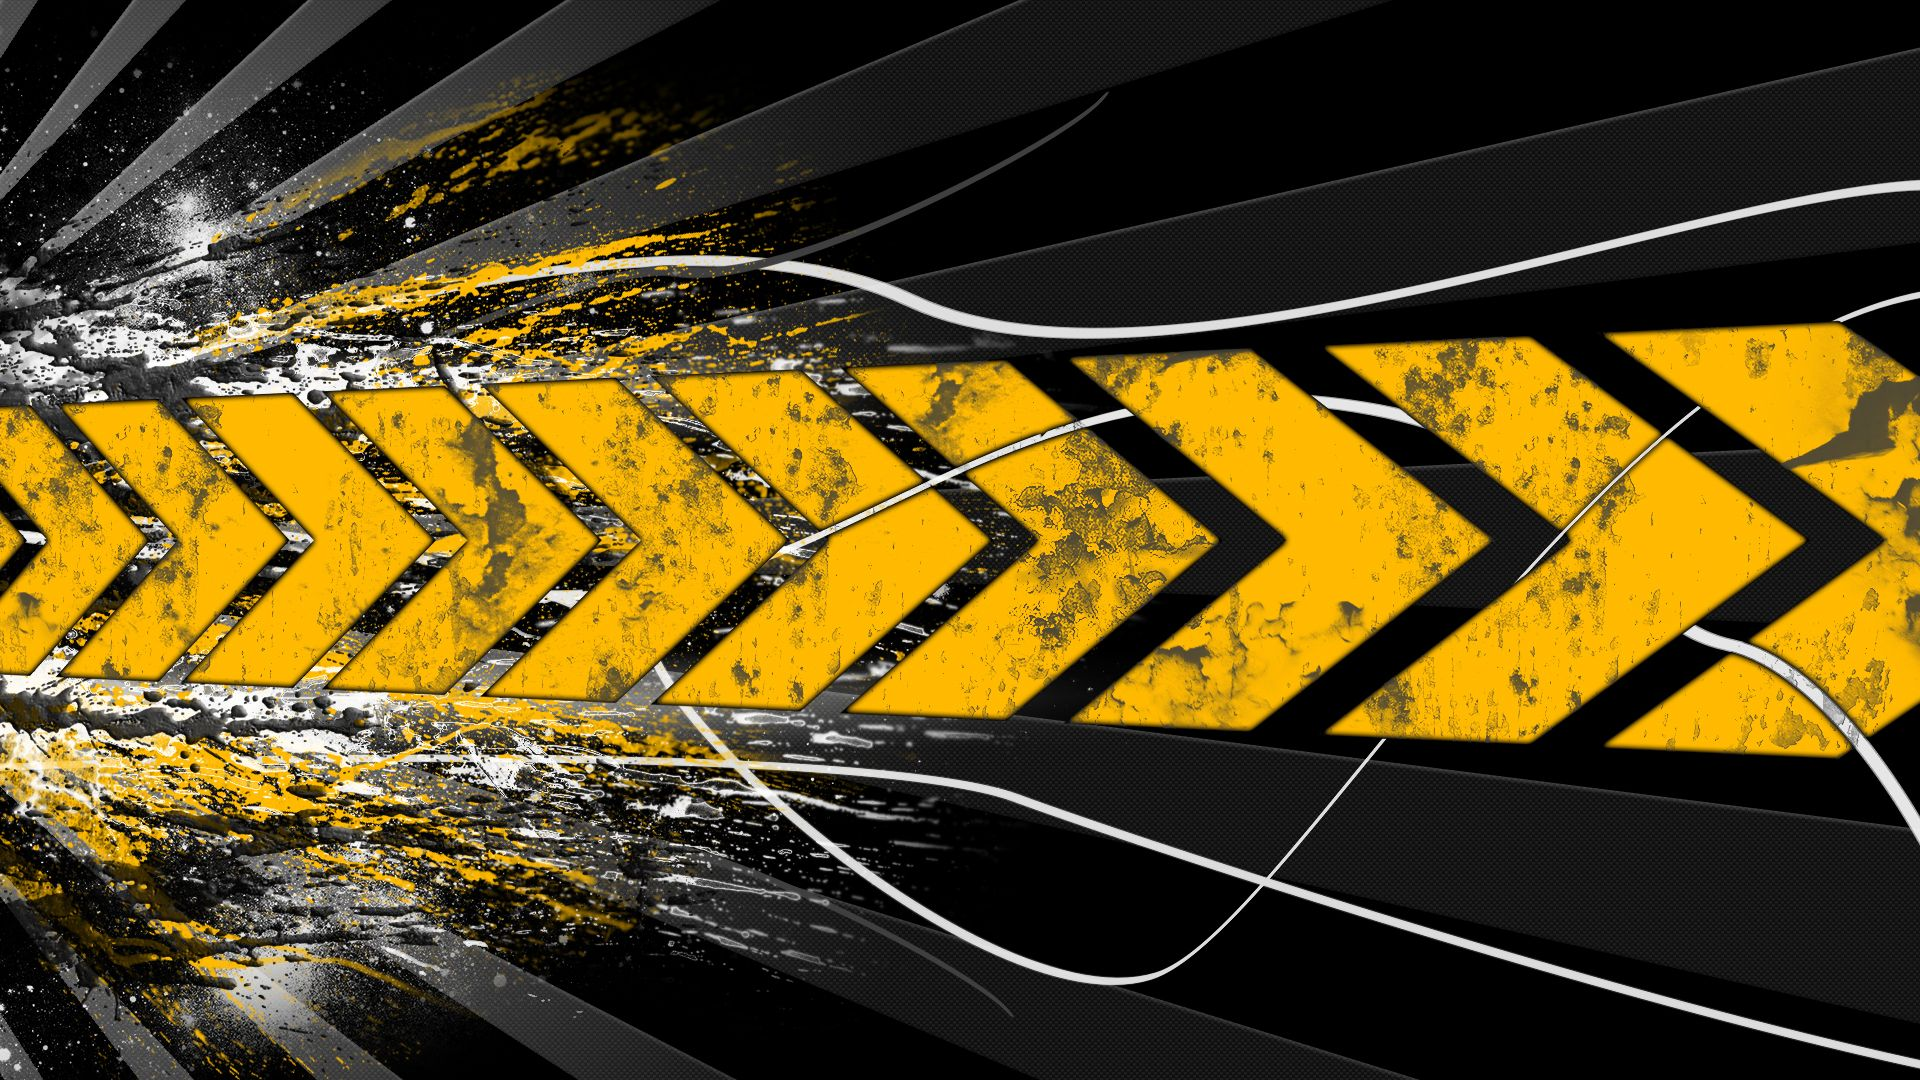 1920 1080 Abstract Wallpaper Backgrounds Abstract Wallpaper Abstract Backgrounds